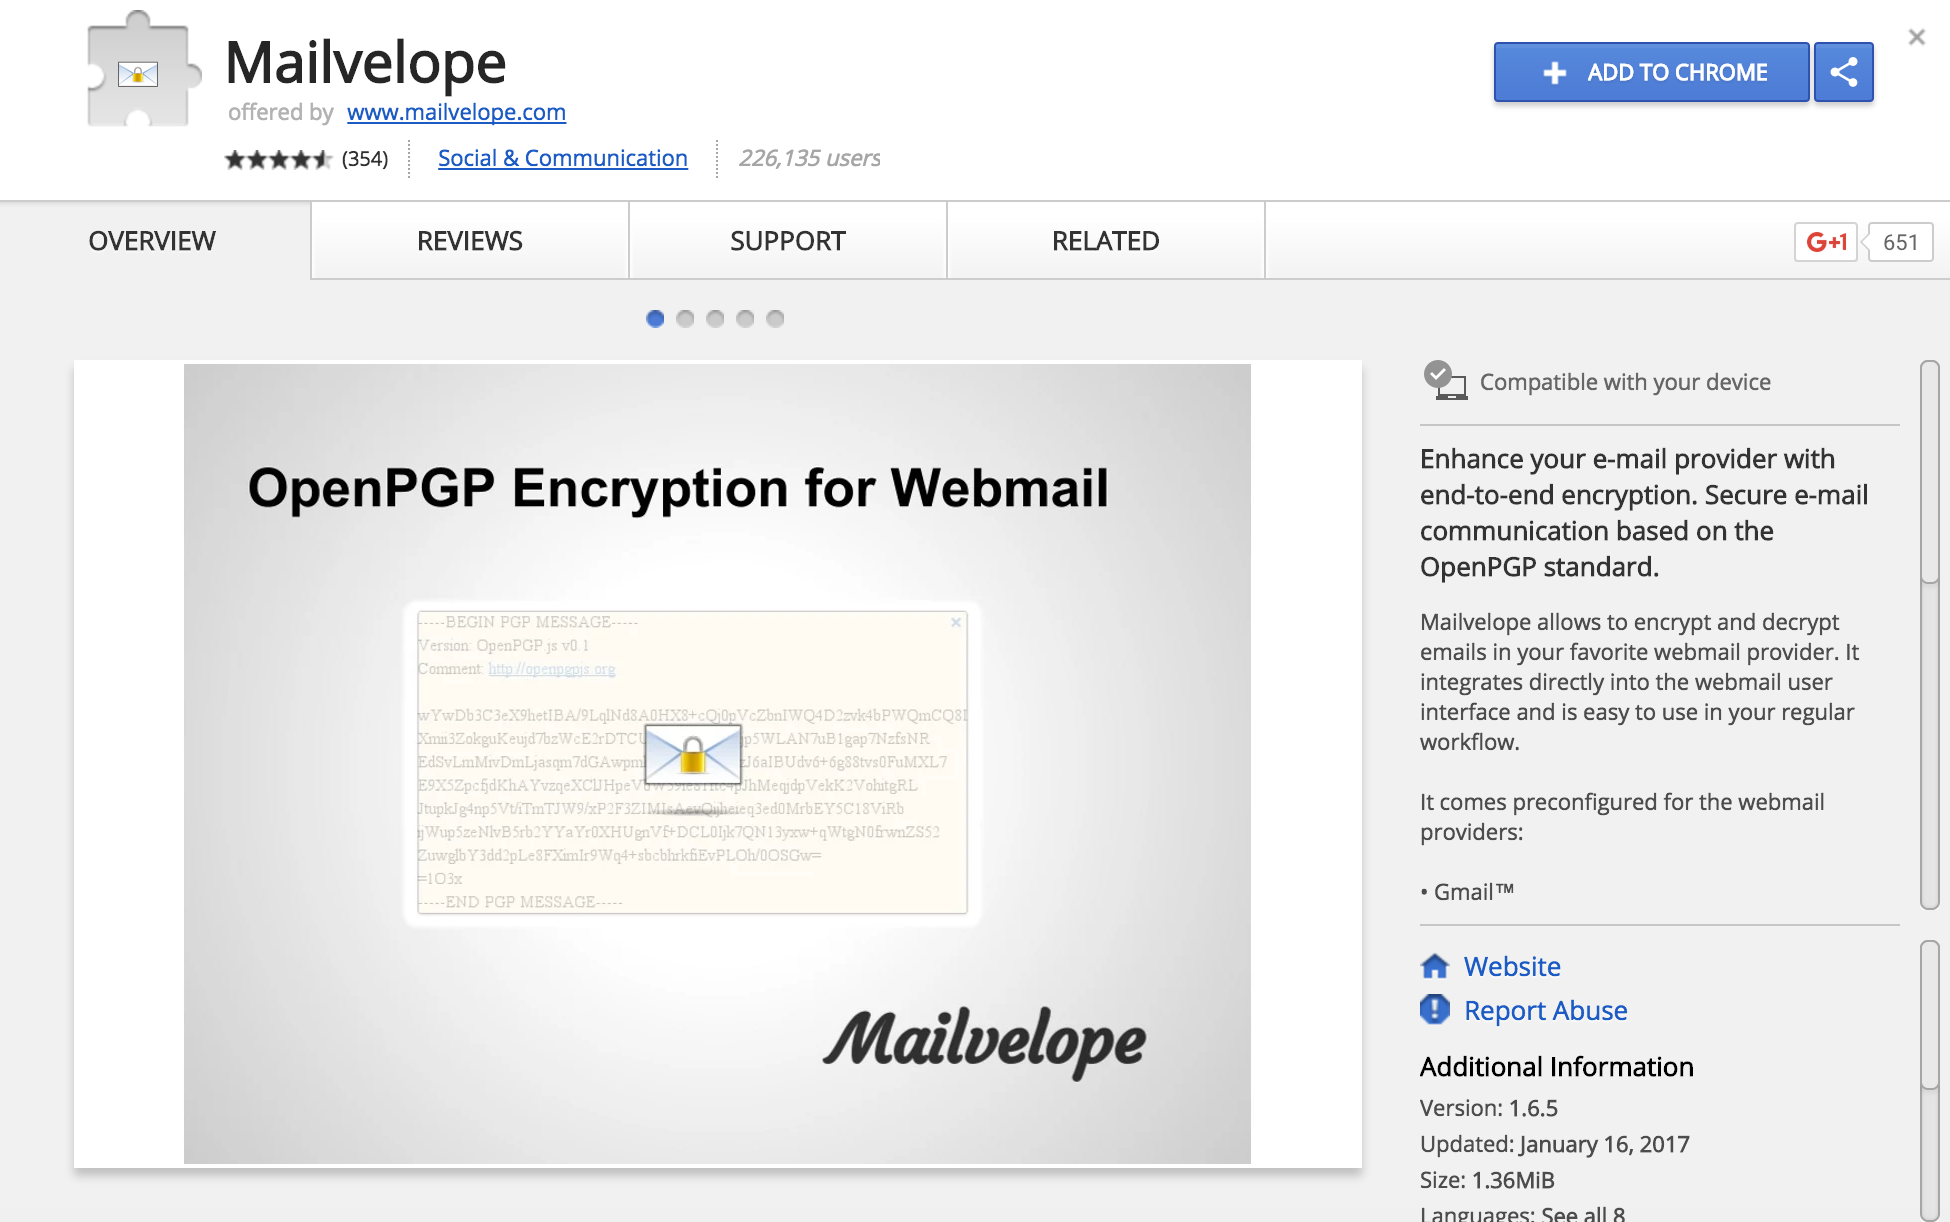 Mailvelope allows you to easily encrypt emails using PGP keys.